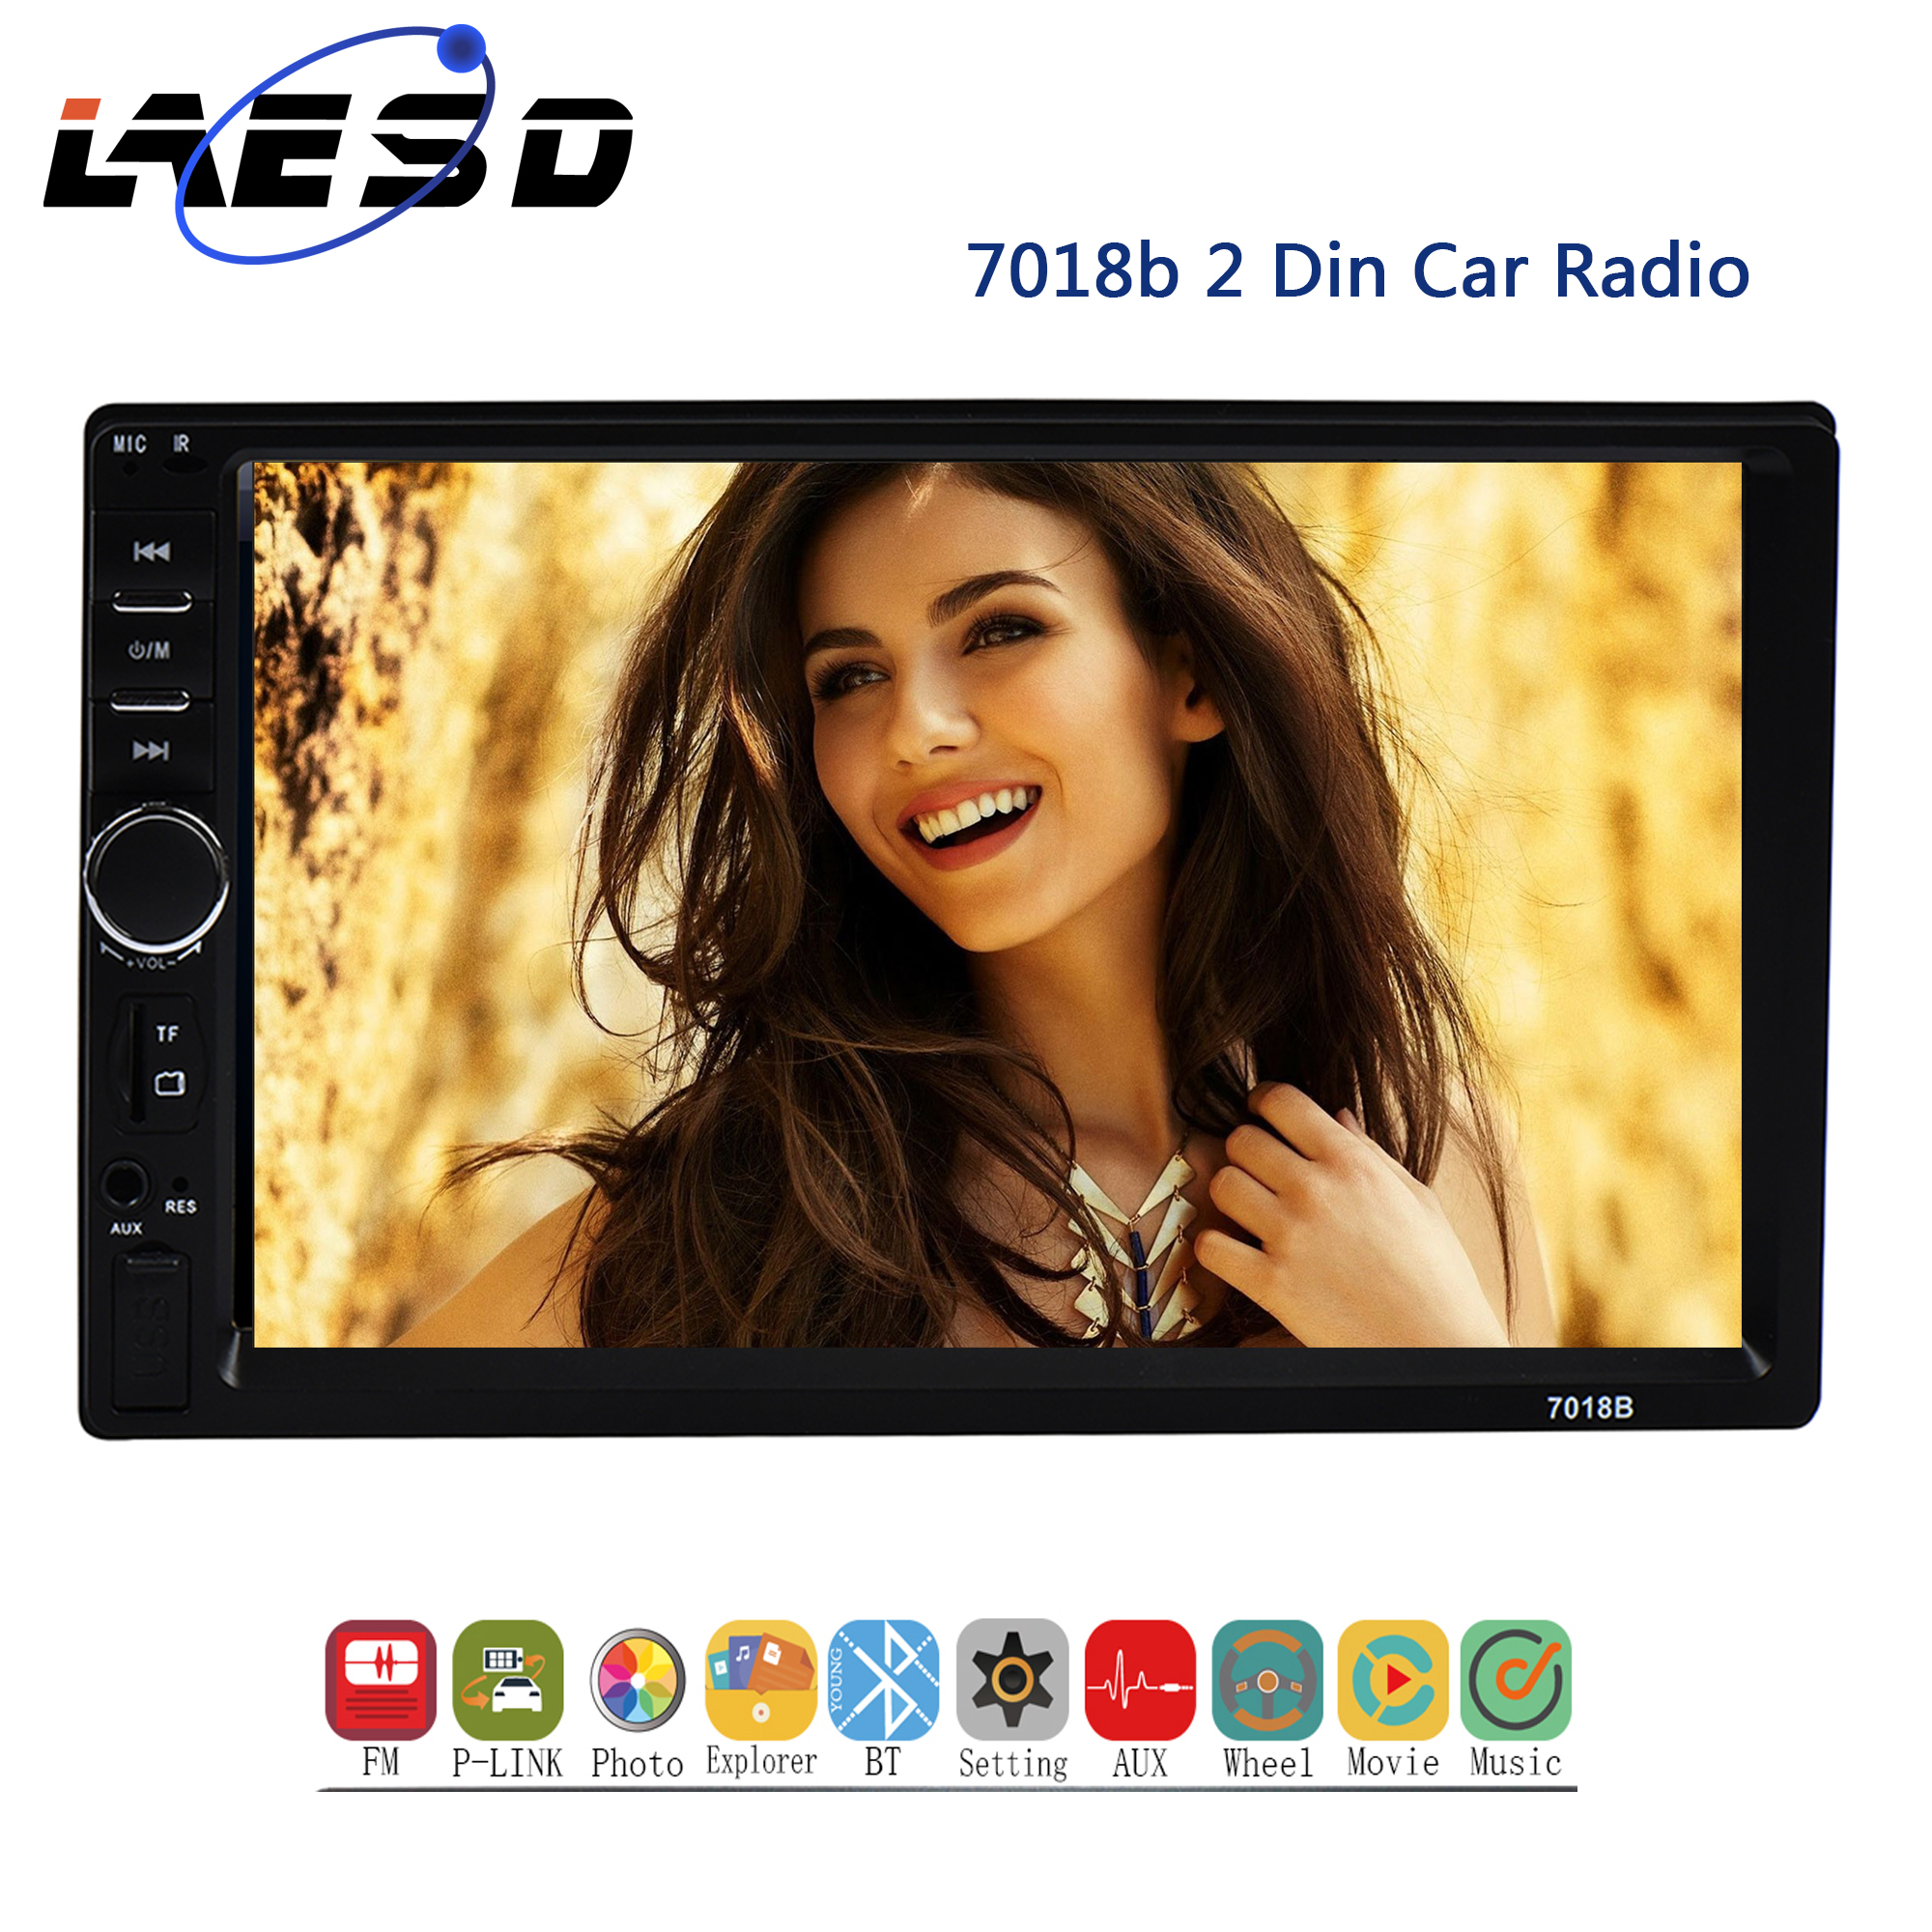 2Din Car <font><b>MP5</b></font> Player <font><b>7018b</b></font> Auto Radio 7'' HD Touch Screen 1080P FM AM TF USB Wince Sys Digital Stereo 2 din <font><b>MP5</b></font> Aotomotivo Video image